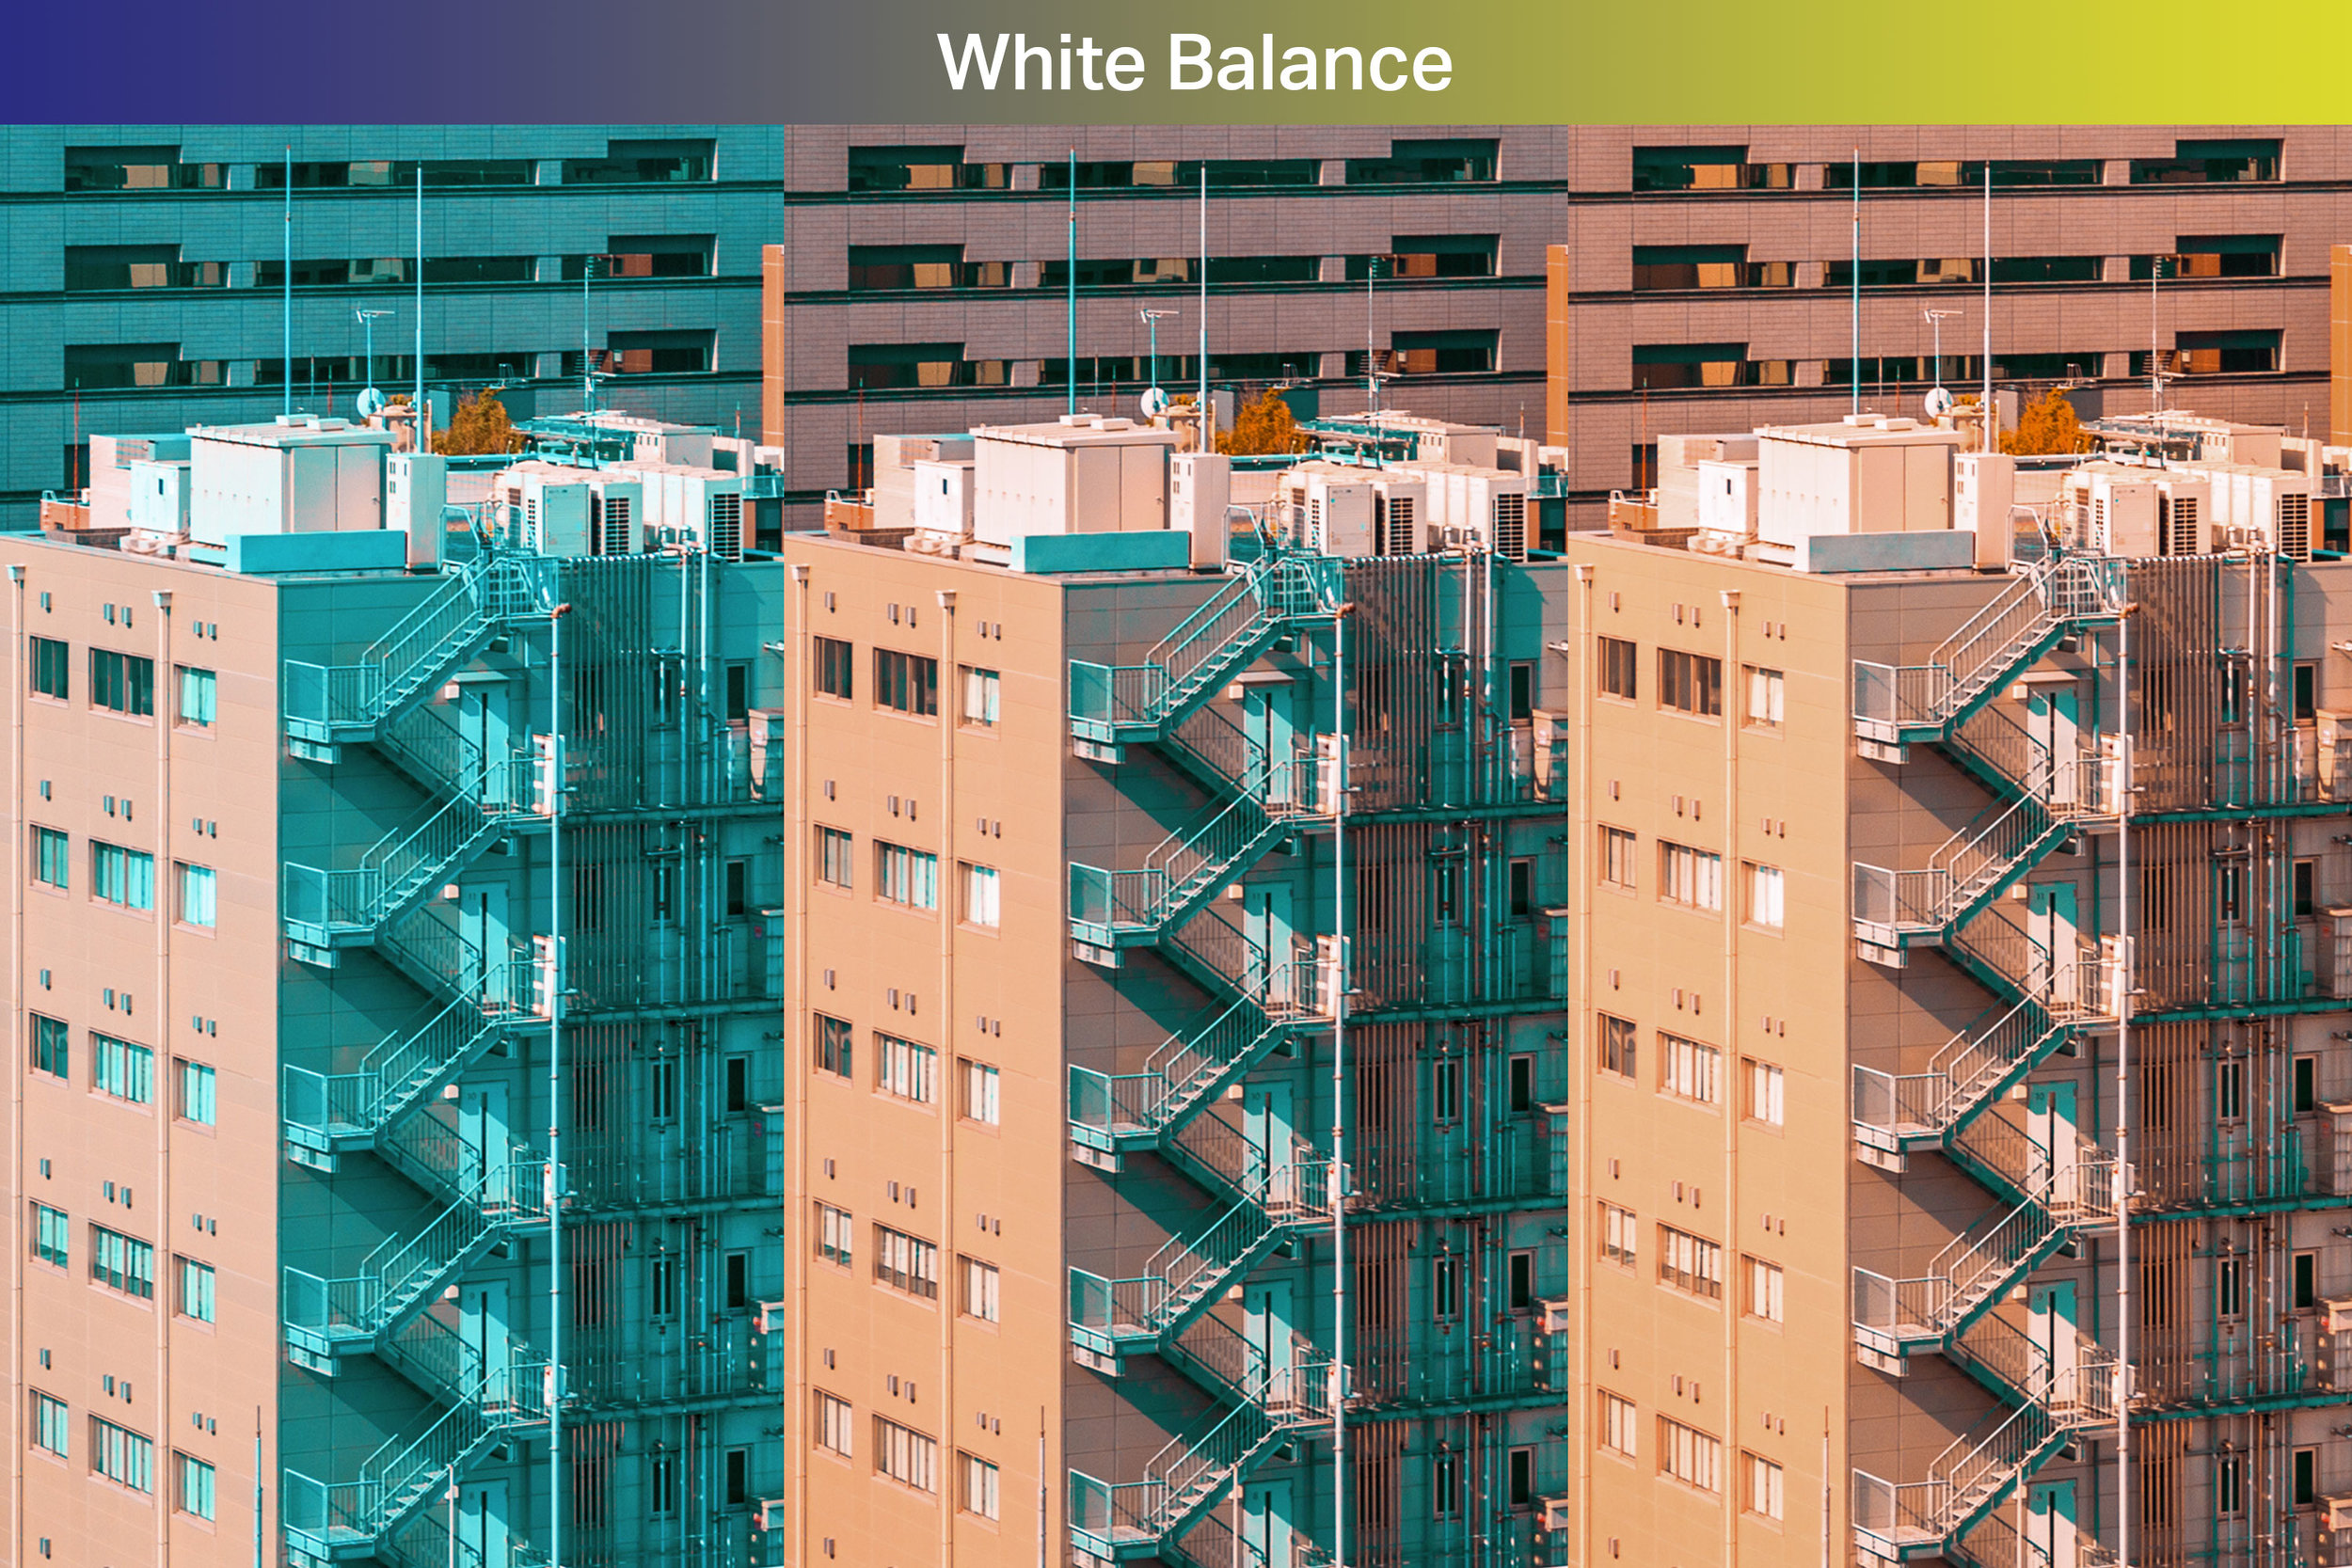 Easily adjust the orange and teal balance. - Control how much orange or teal your image simply by changing the white balance.